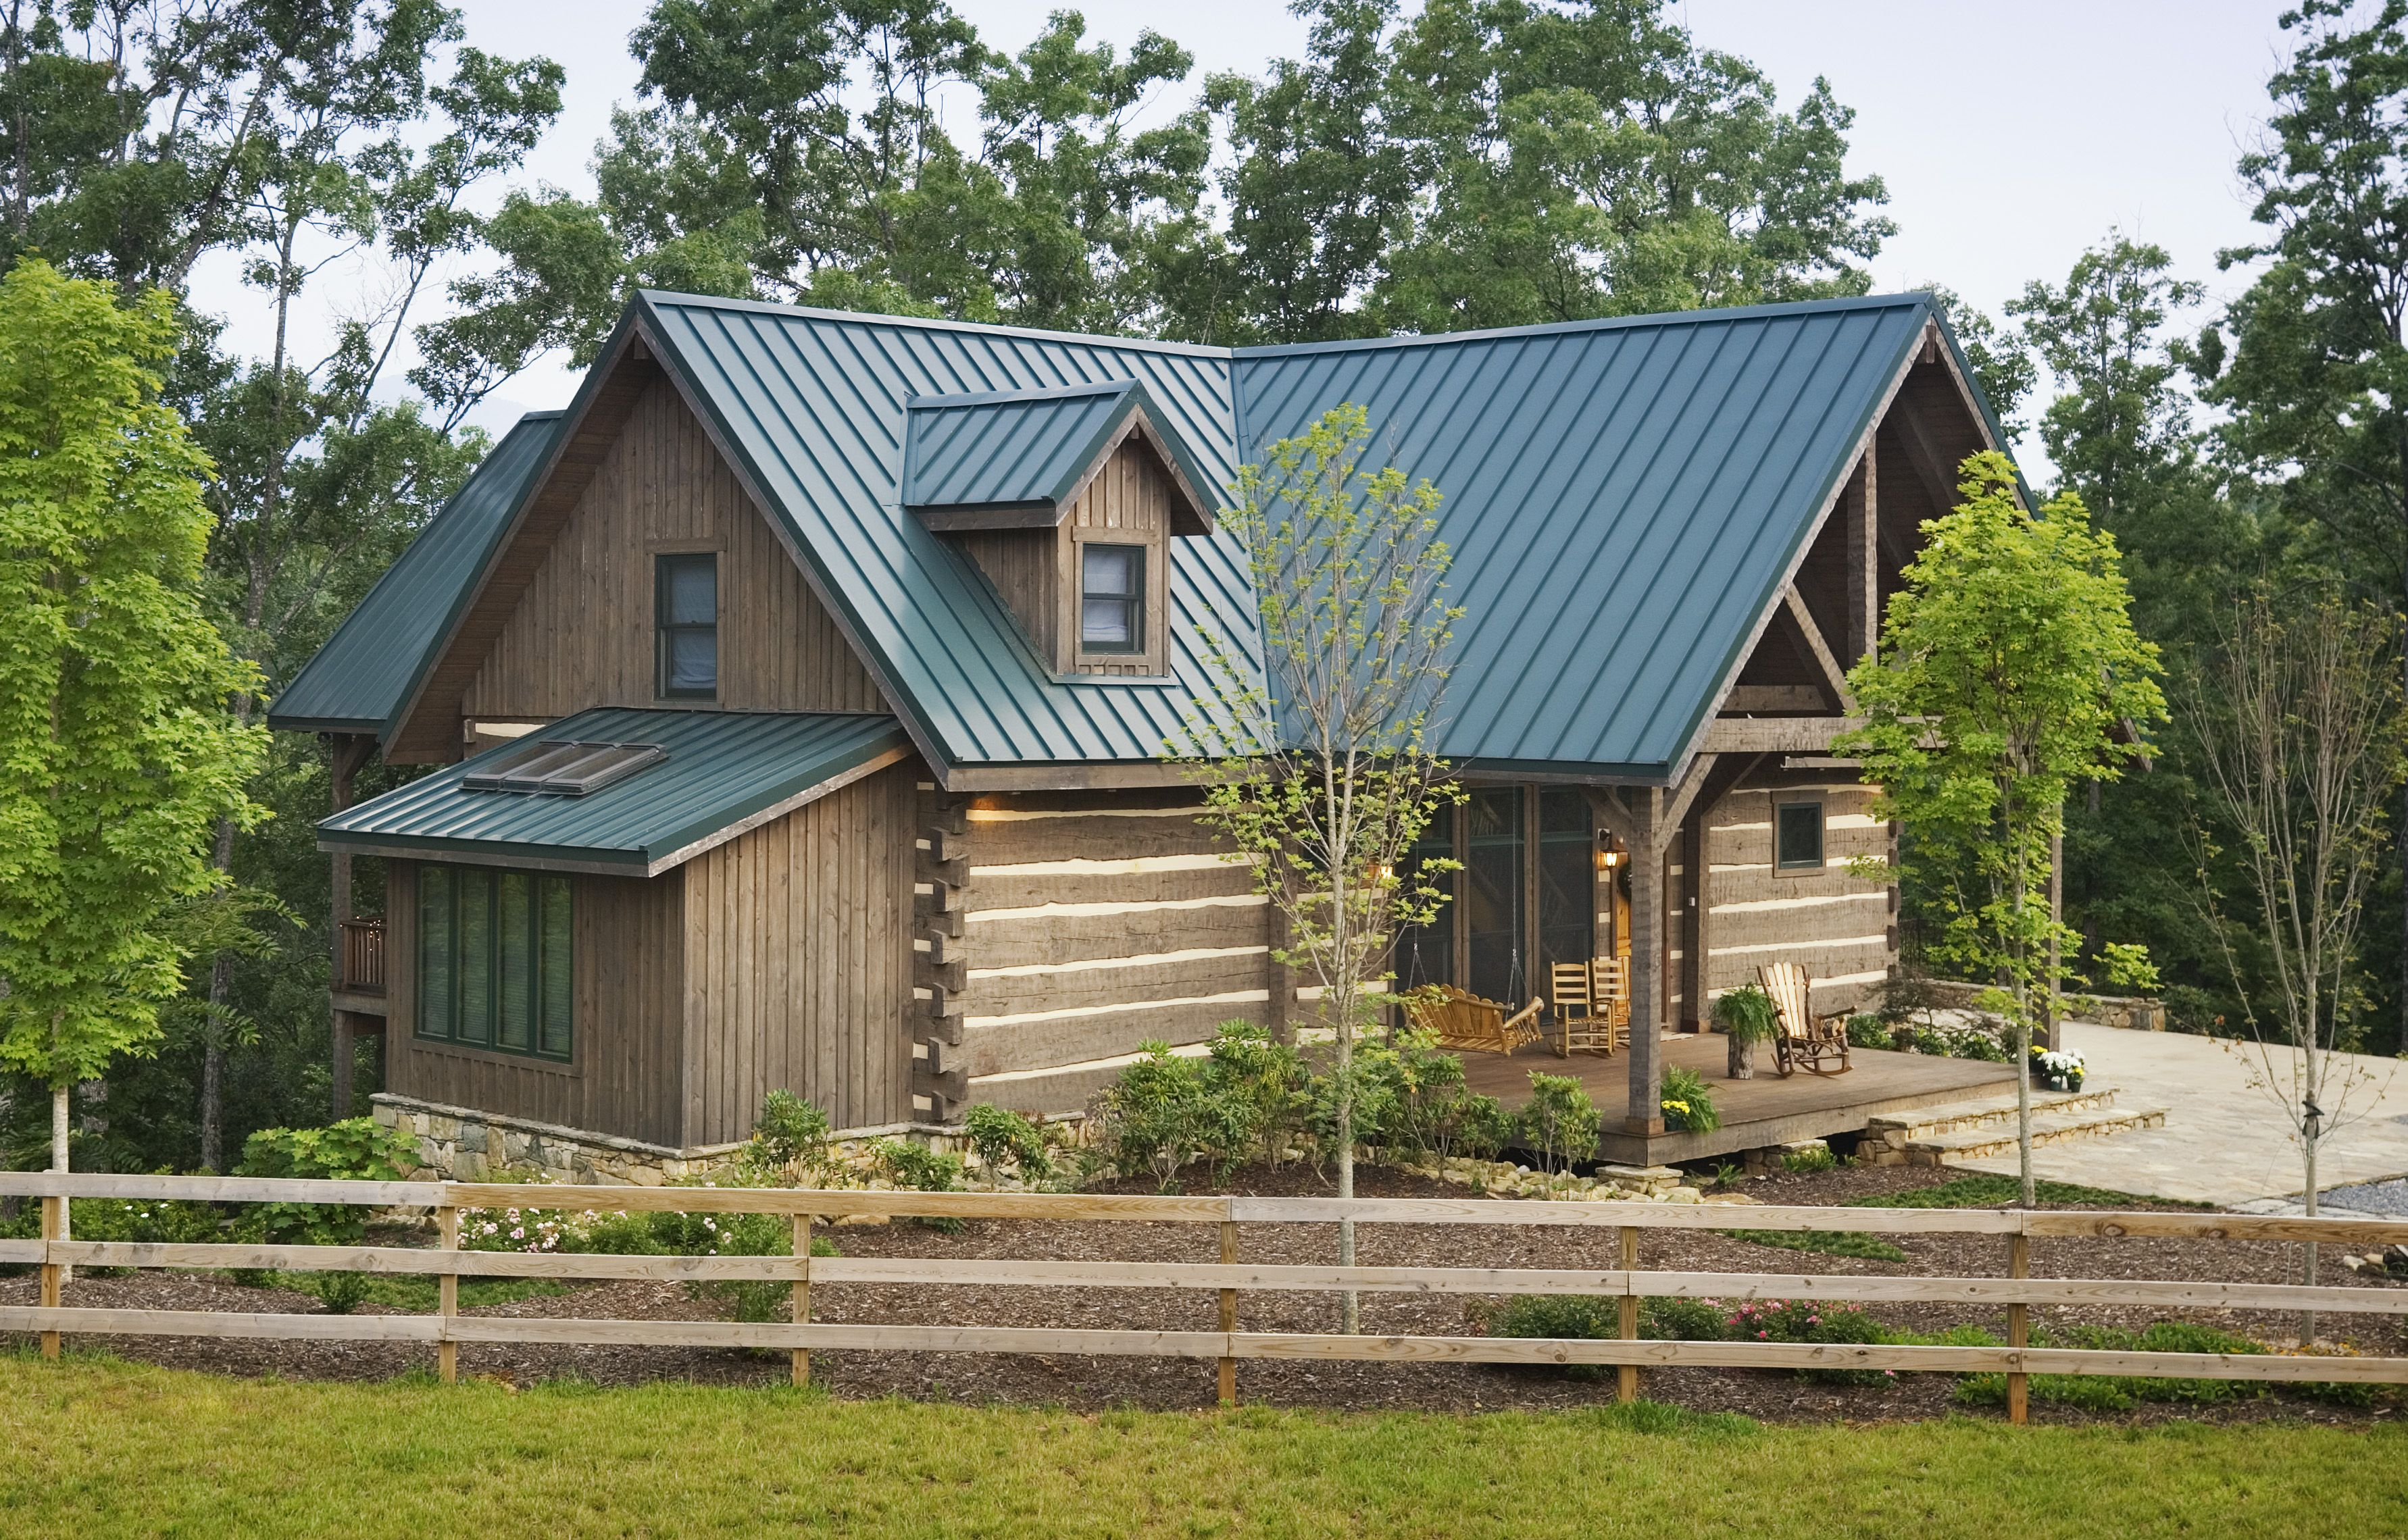 Lifeline ultra 2 gentry gray log home stain log home for Windows for log cabins